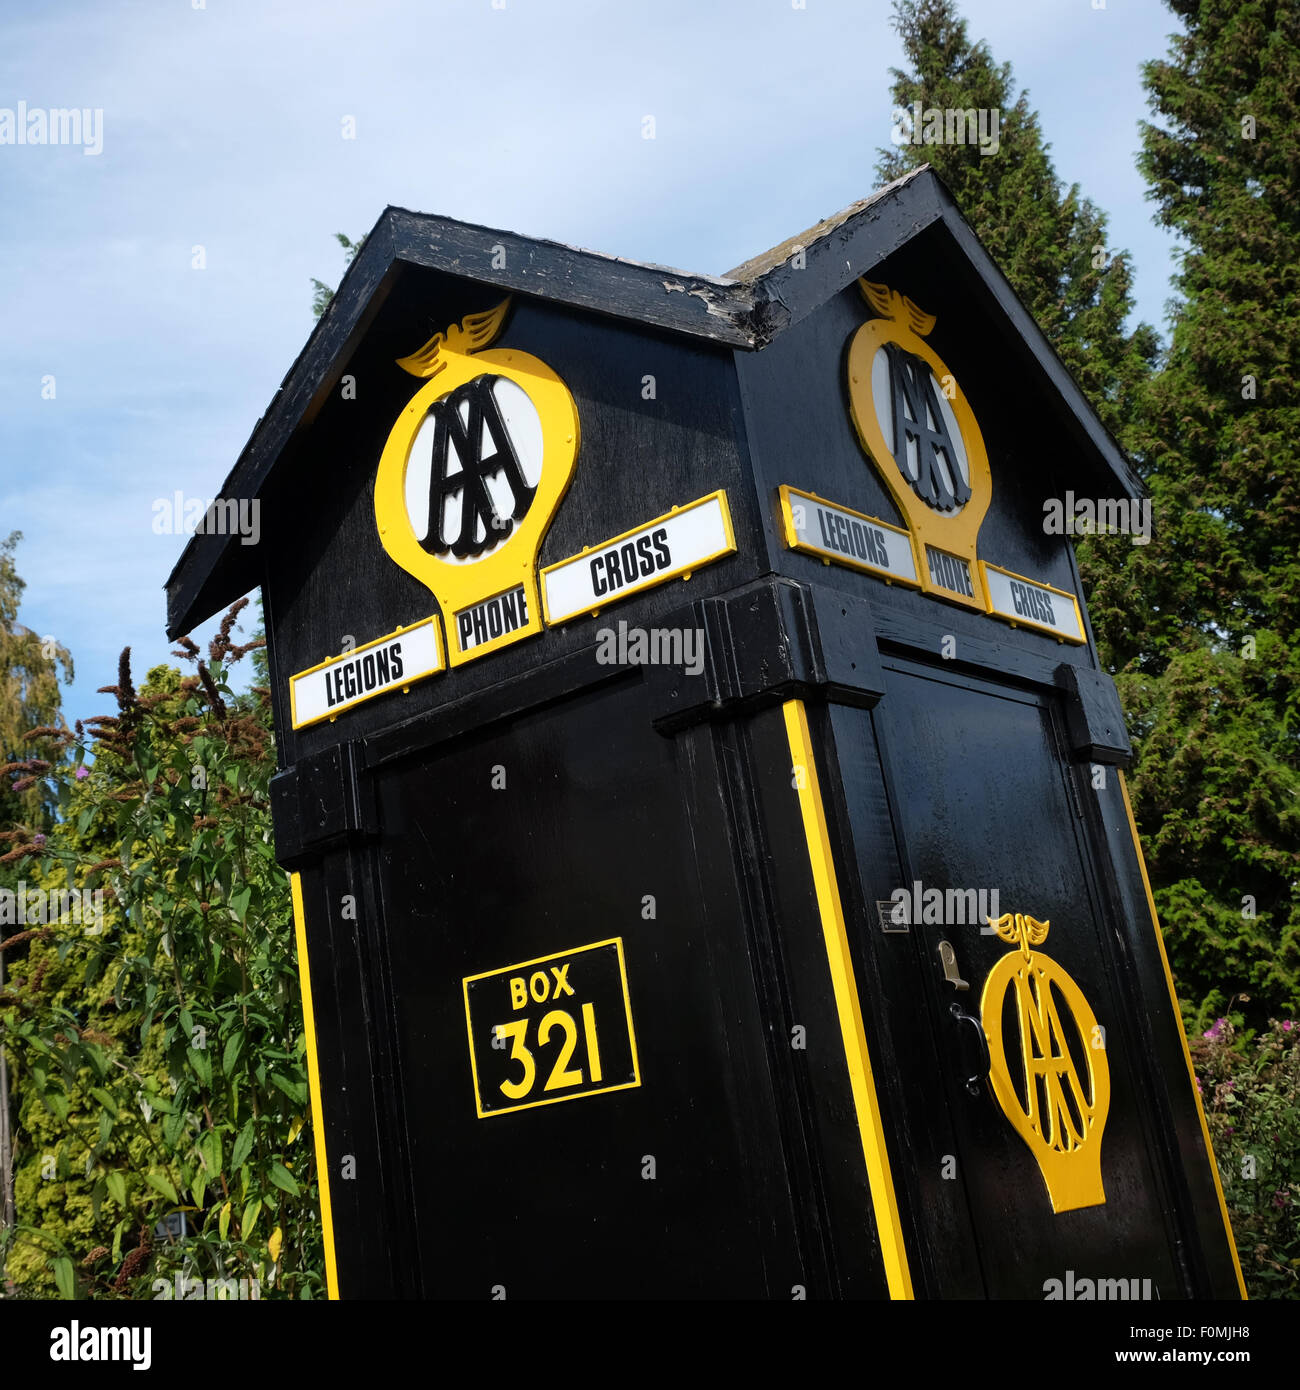 Eardisland, Herefordhire - old AA phone box from the 1920s on display - the box was originally at Legions Cross - Stock Image